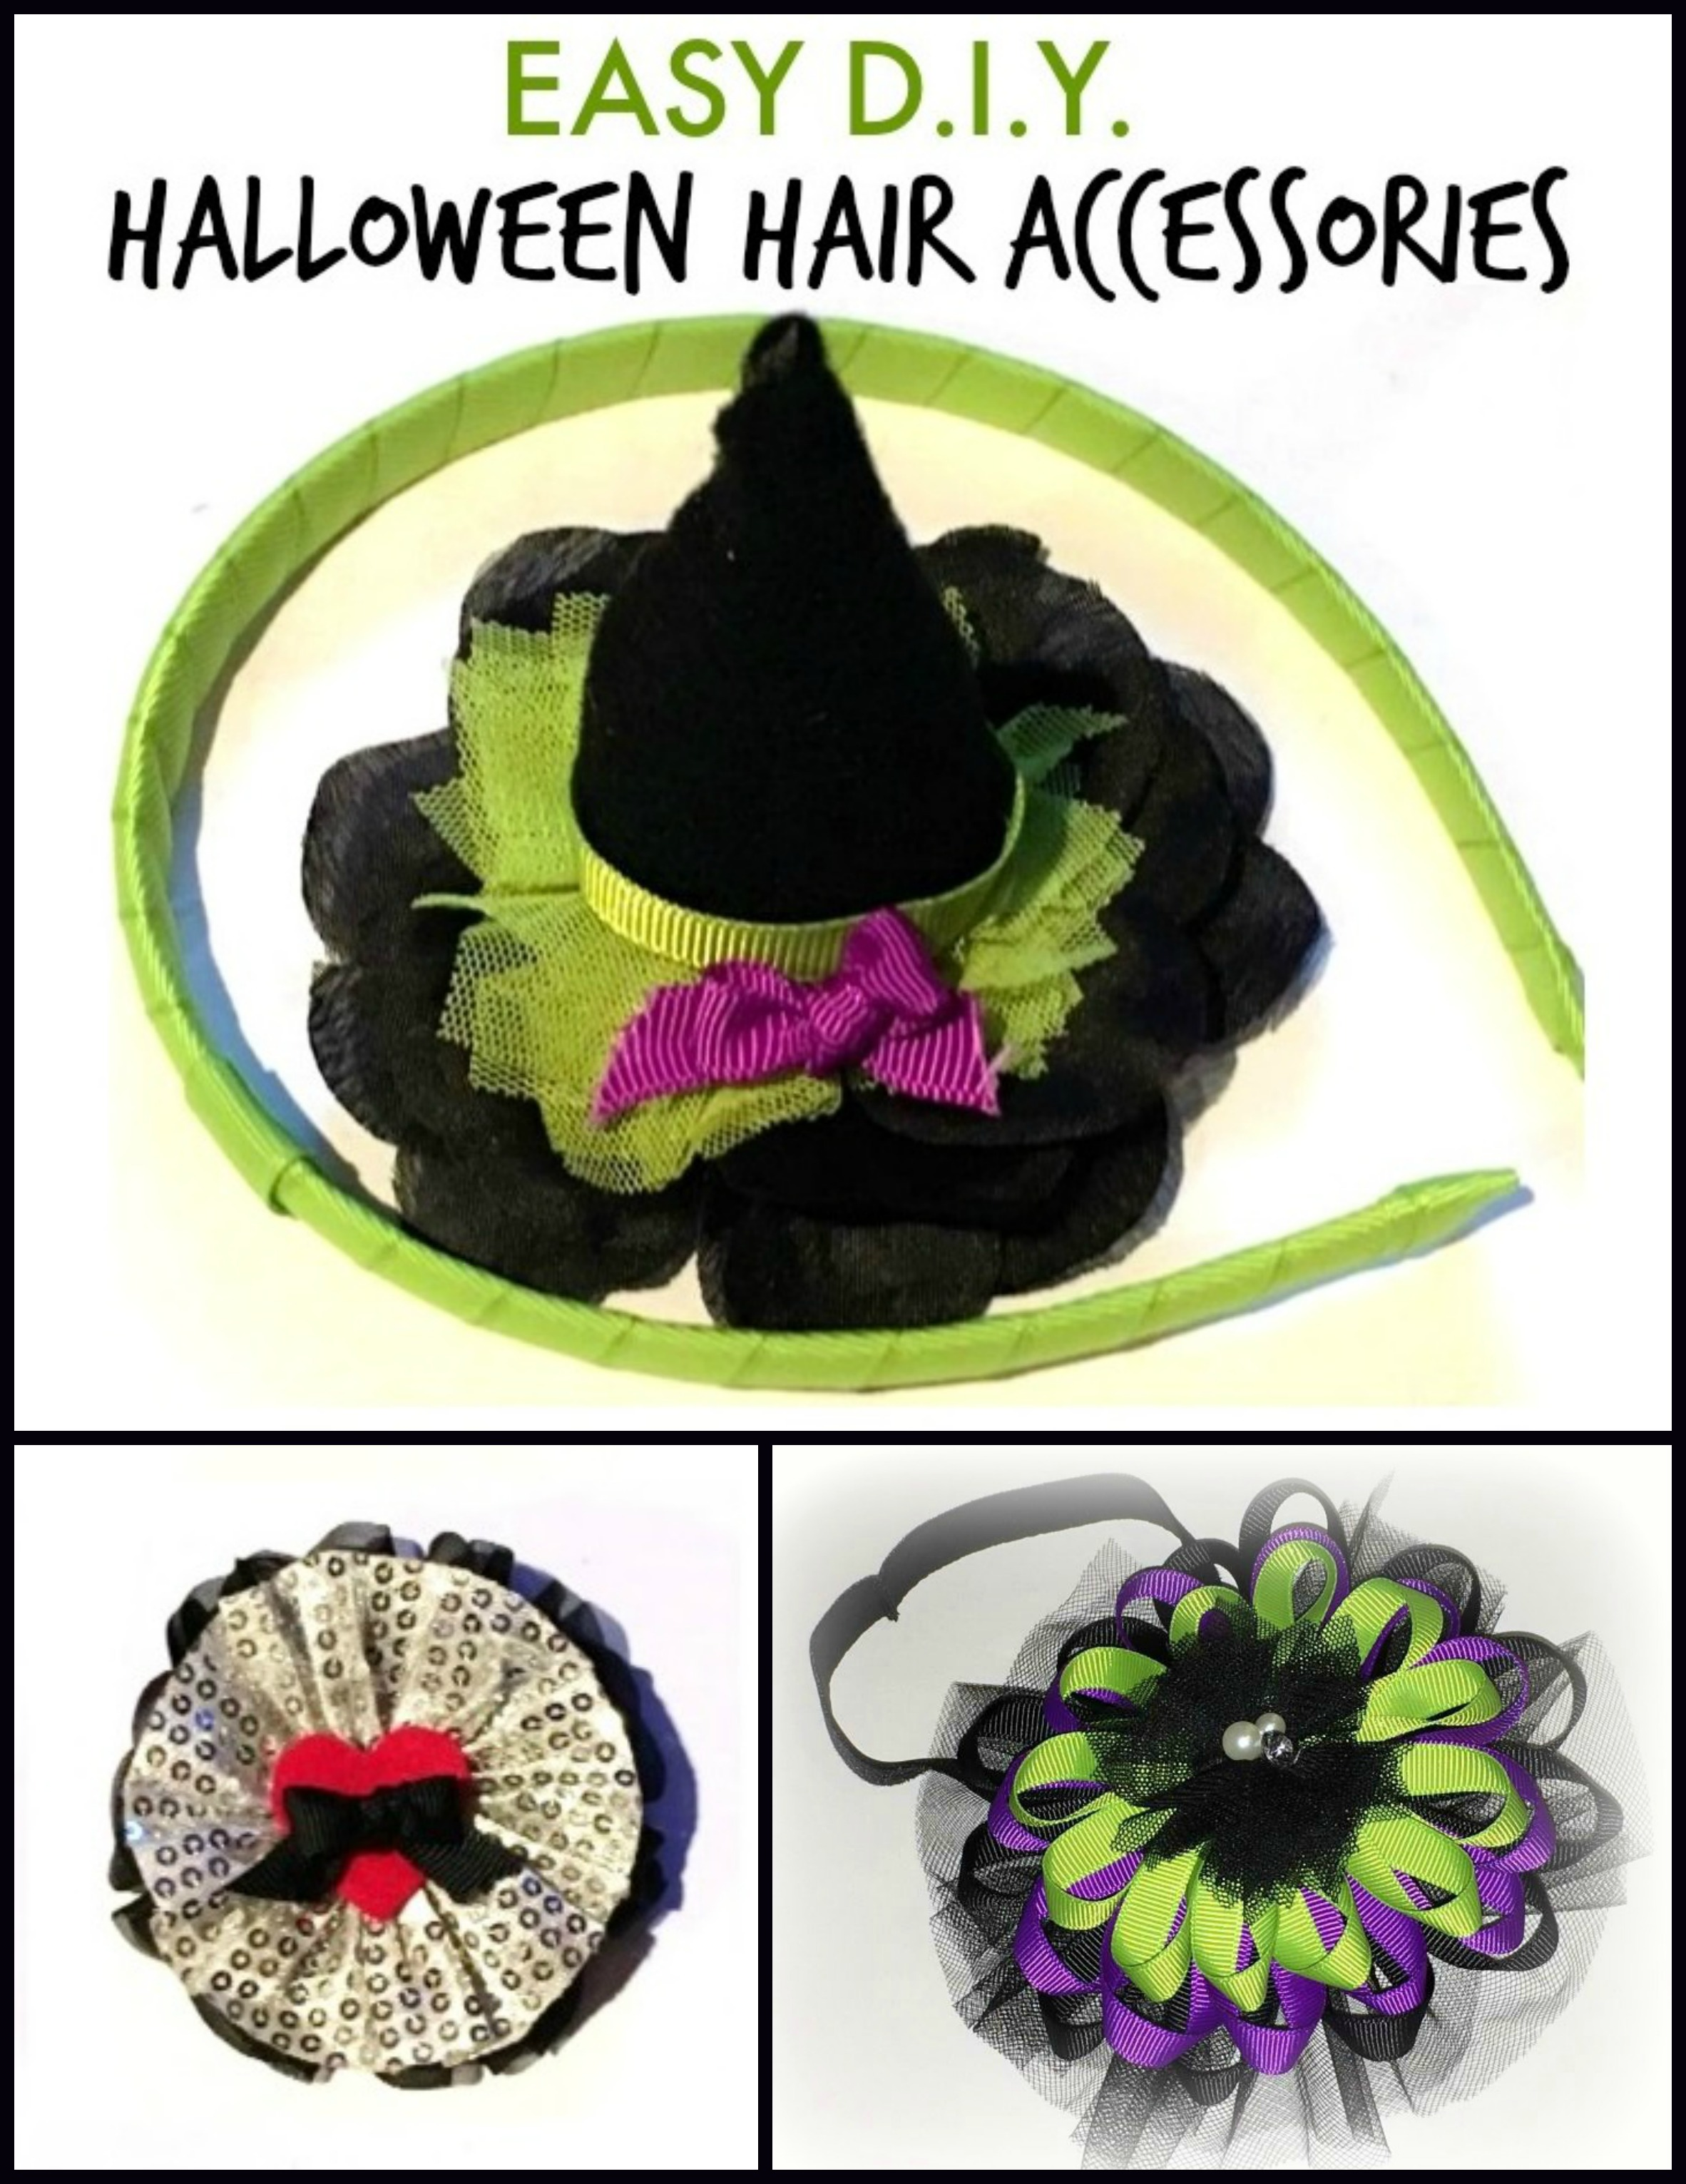 Halloween hair accessories 3 easy crafting tutorials by the hair halloween hair accessories 3 easy crafting tutorials by the hair bow co the hair bow company baditri Image collections